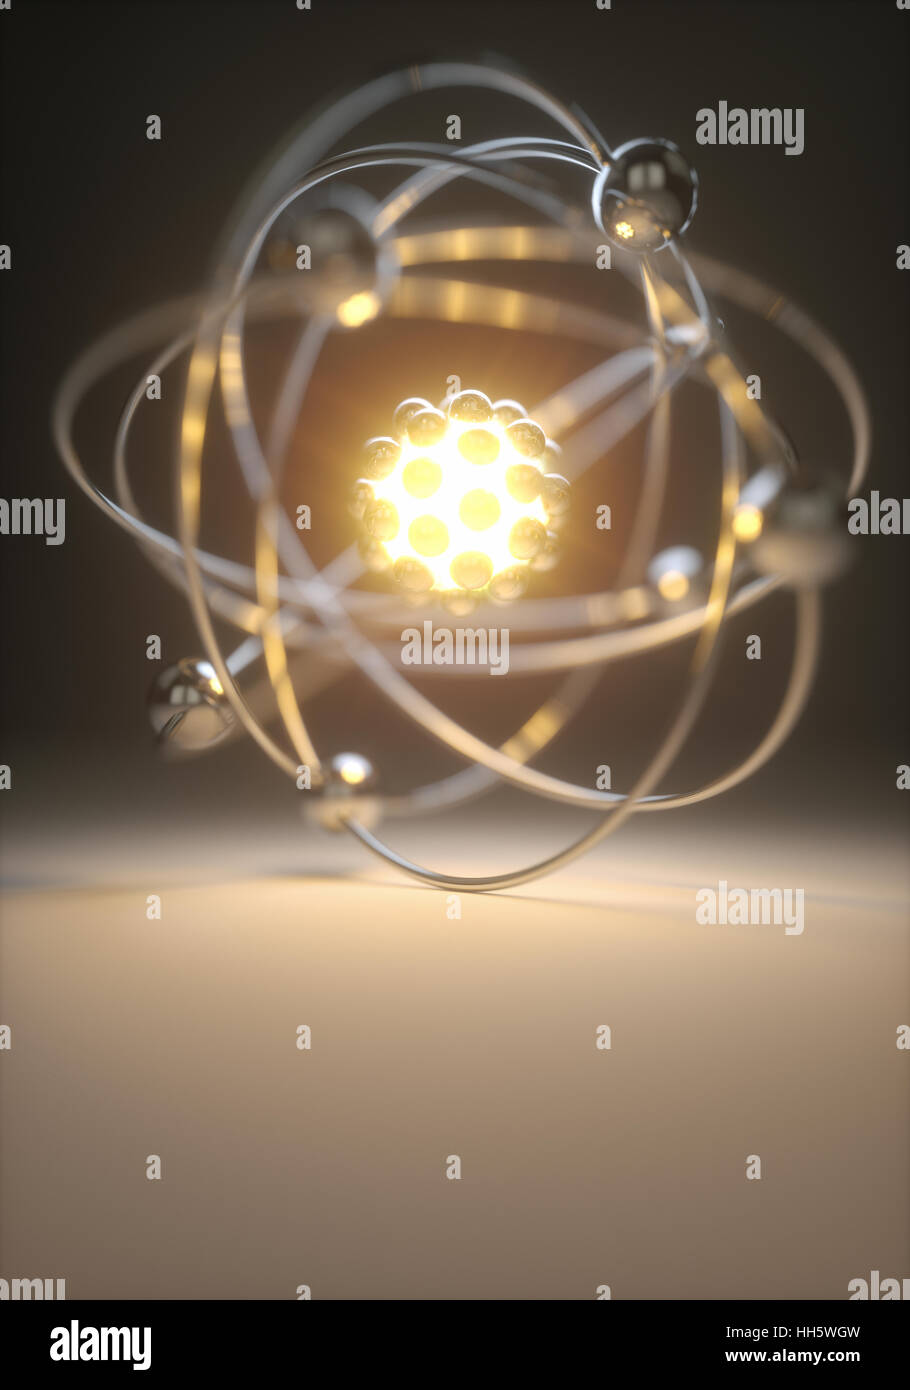 Concept image of a nuclear atomic model with nuclear fusion. Stock Photo